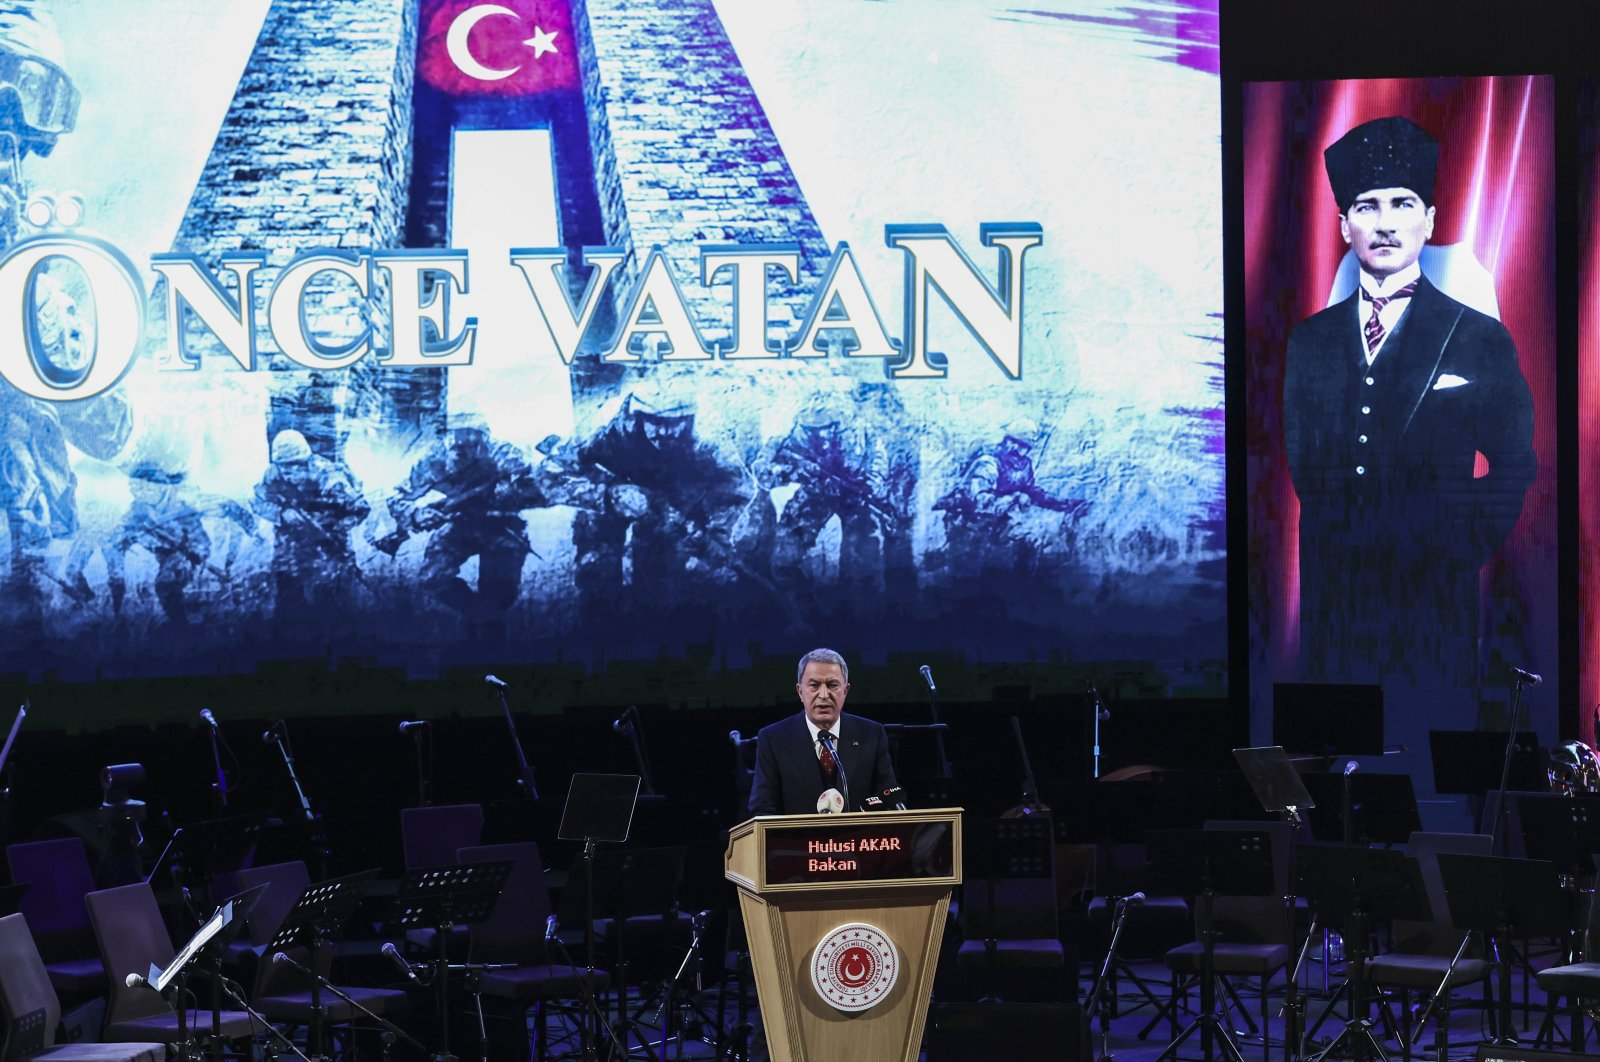 Defense Minister Hulusi Akar speaks at a commemoration event to mark Çanakkale Victory and Martyrs' Day on March 18, 2021. (AA Photo)